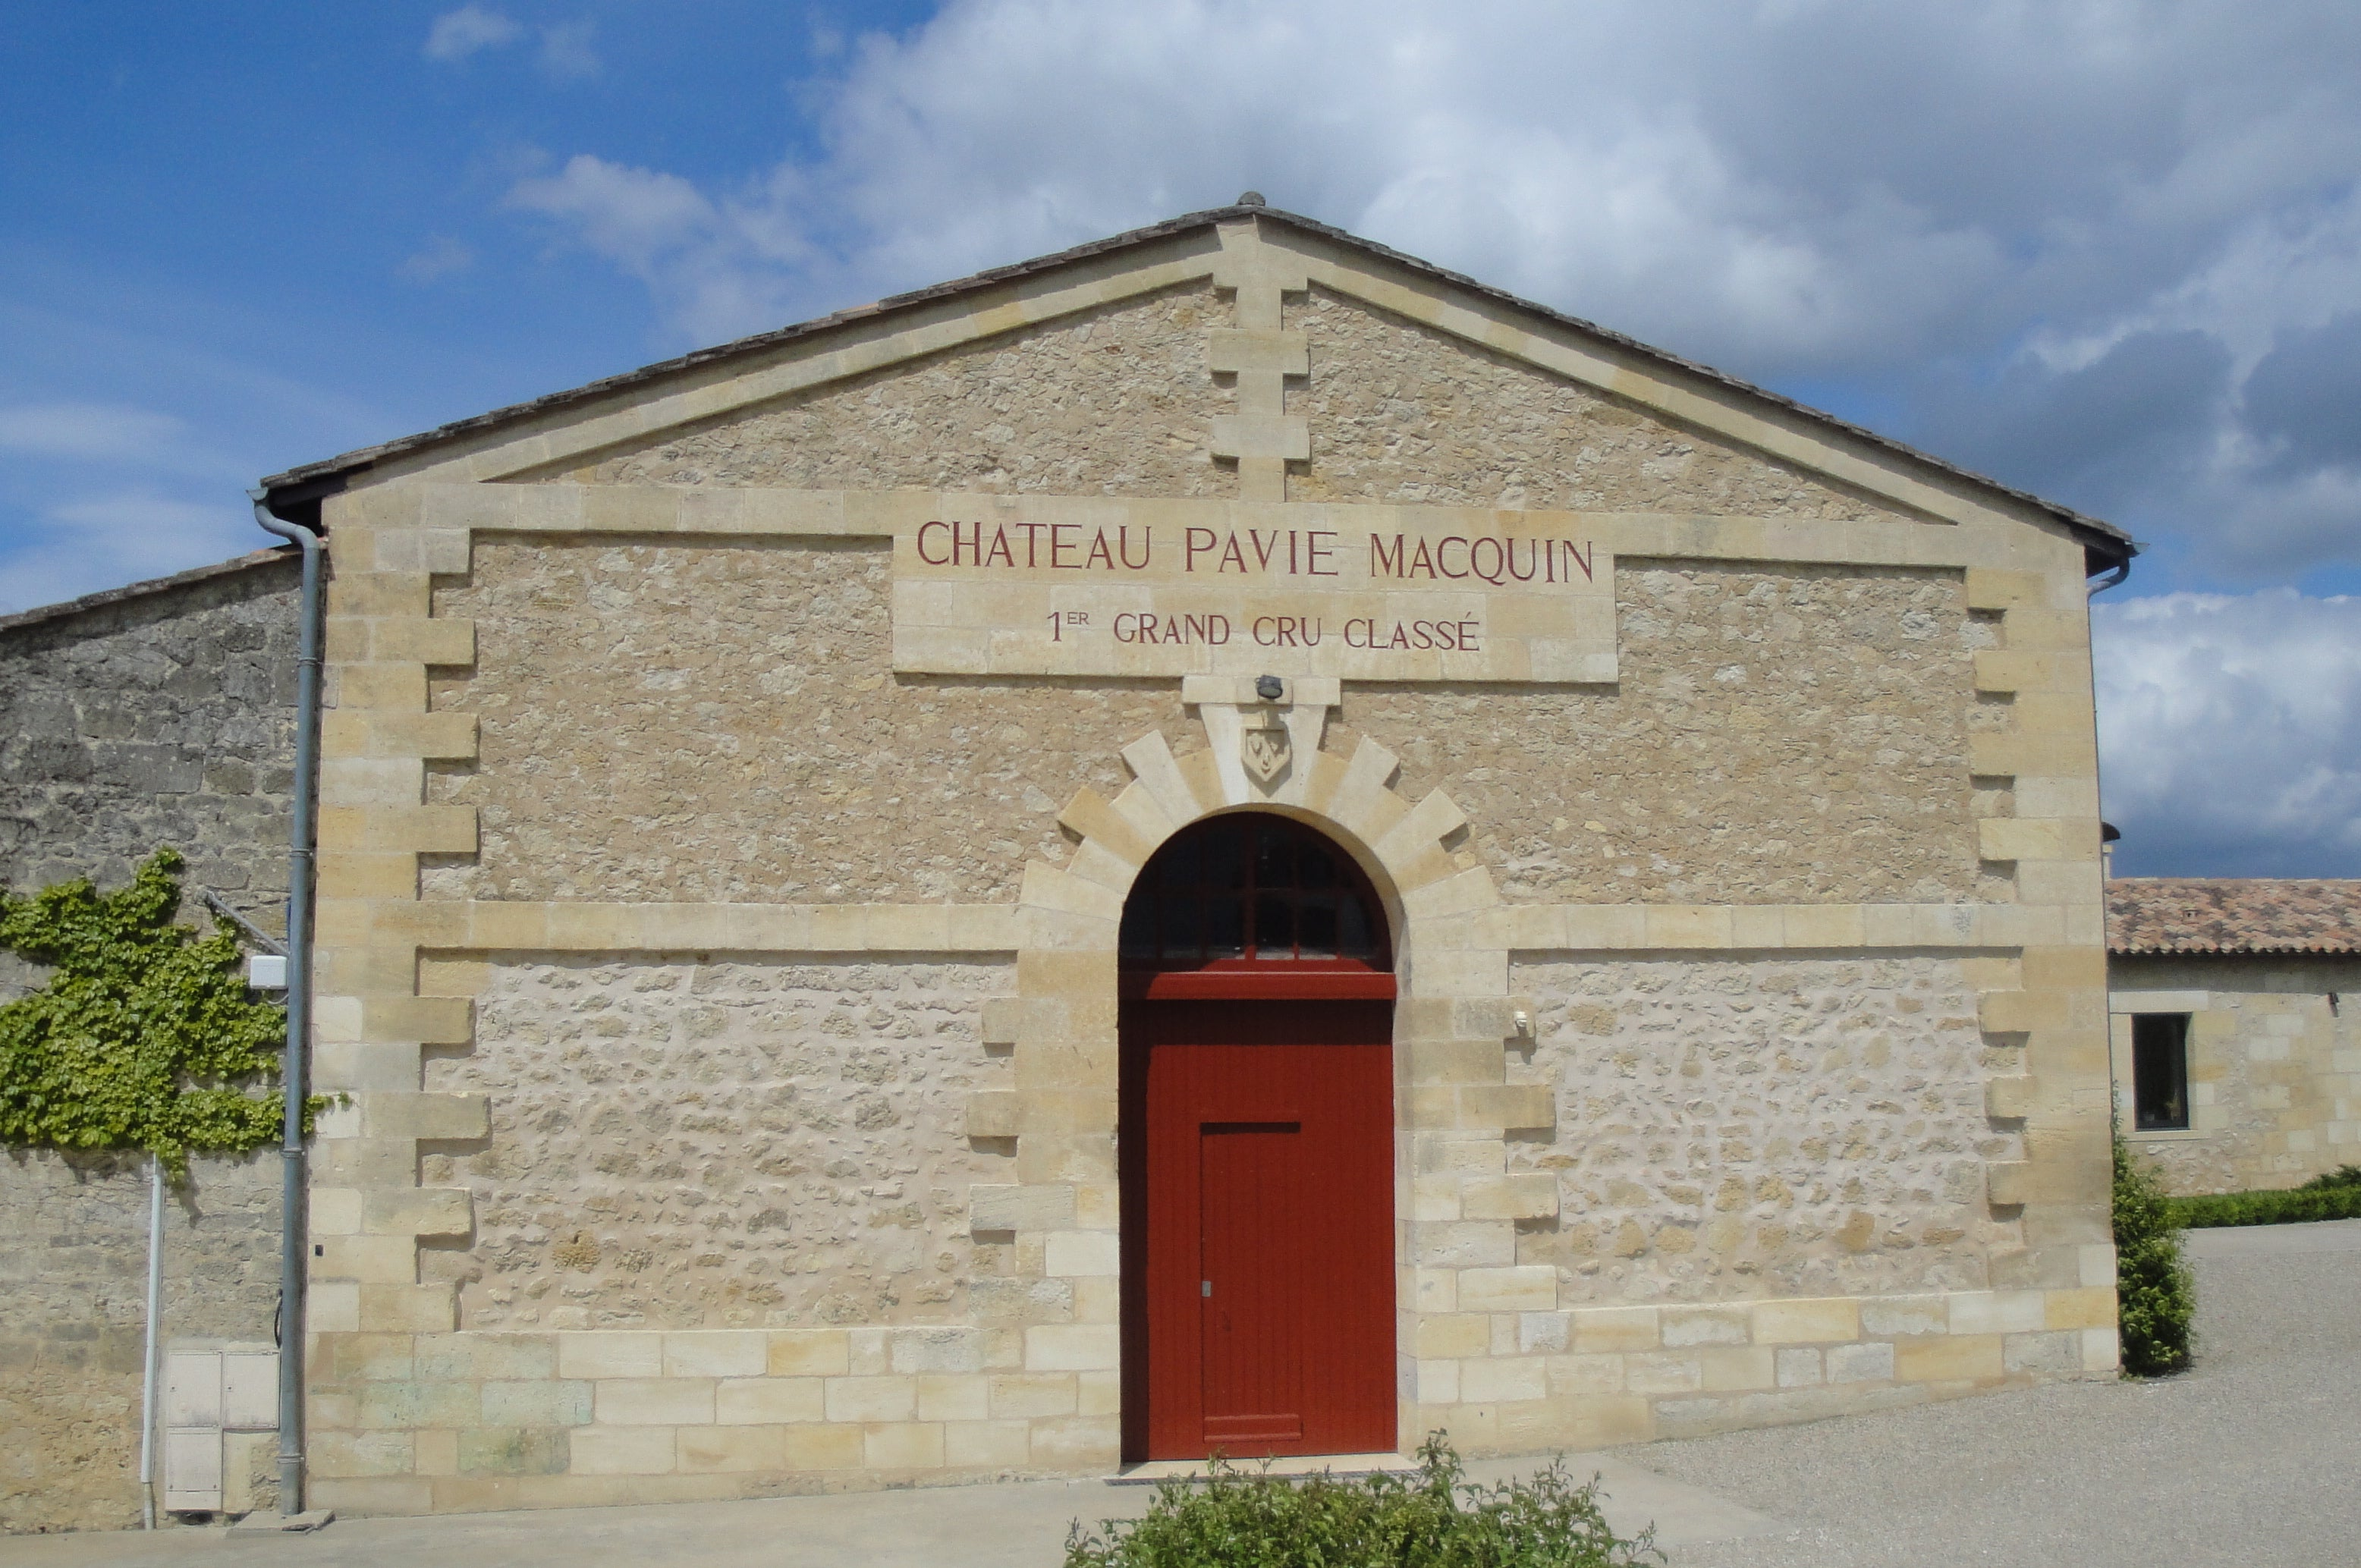 CHATEAU PAVIE MACQUIN SAINT-EMILION BORDEAUX